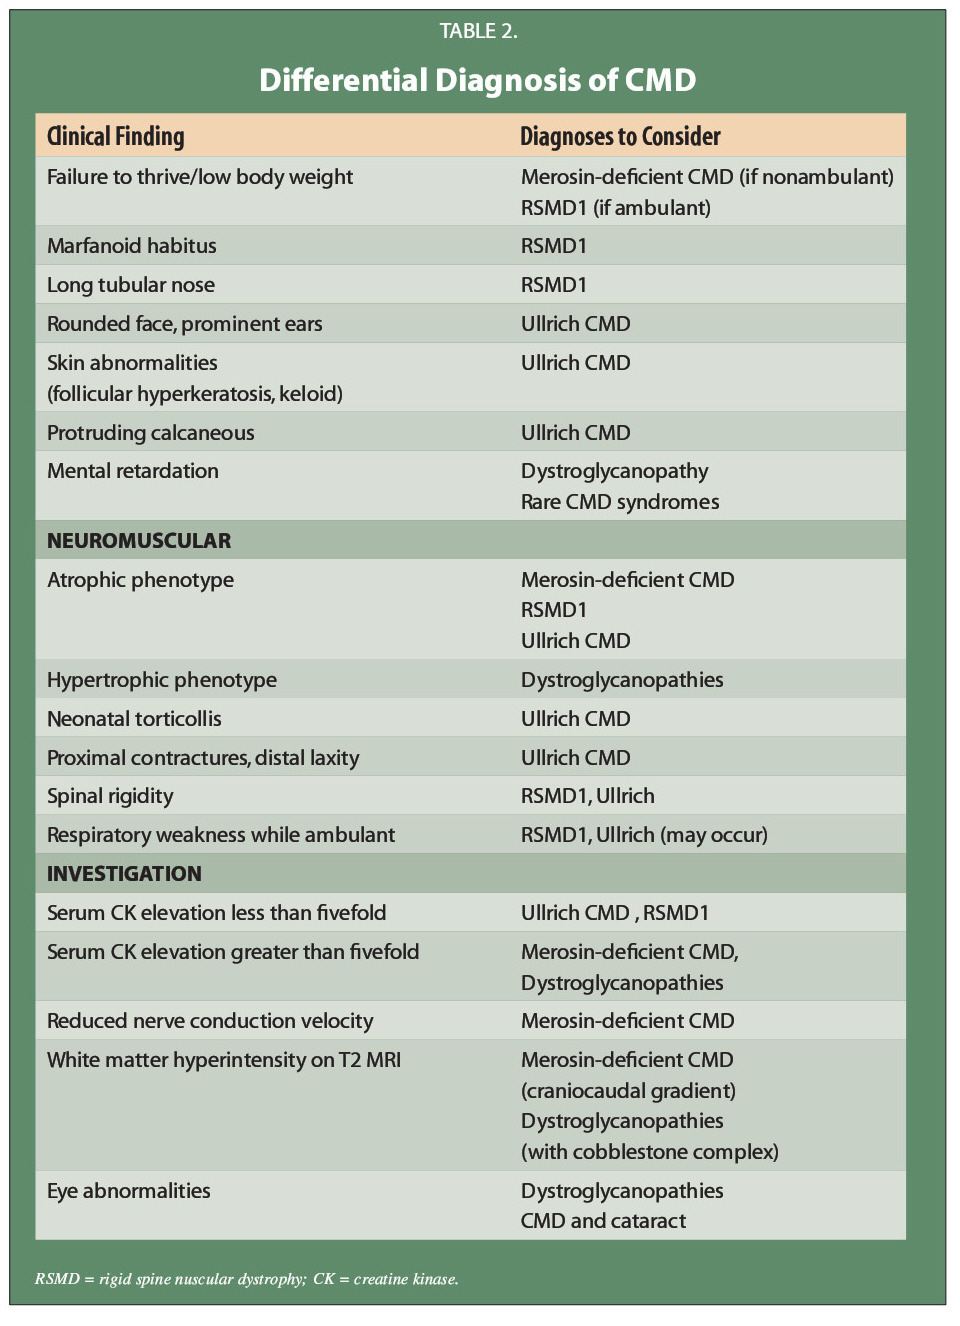 TABLE 2.Differential Diagnosis of CMD